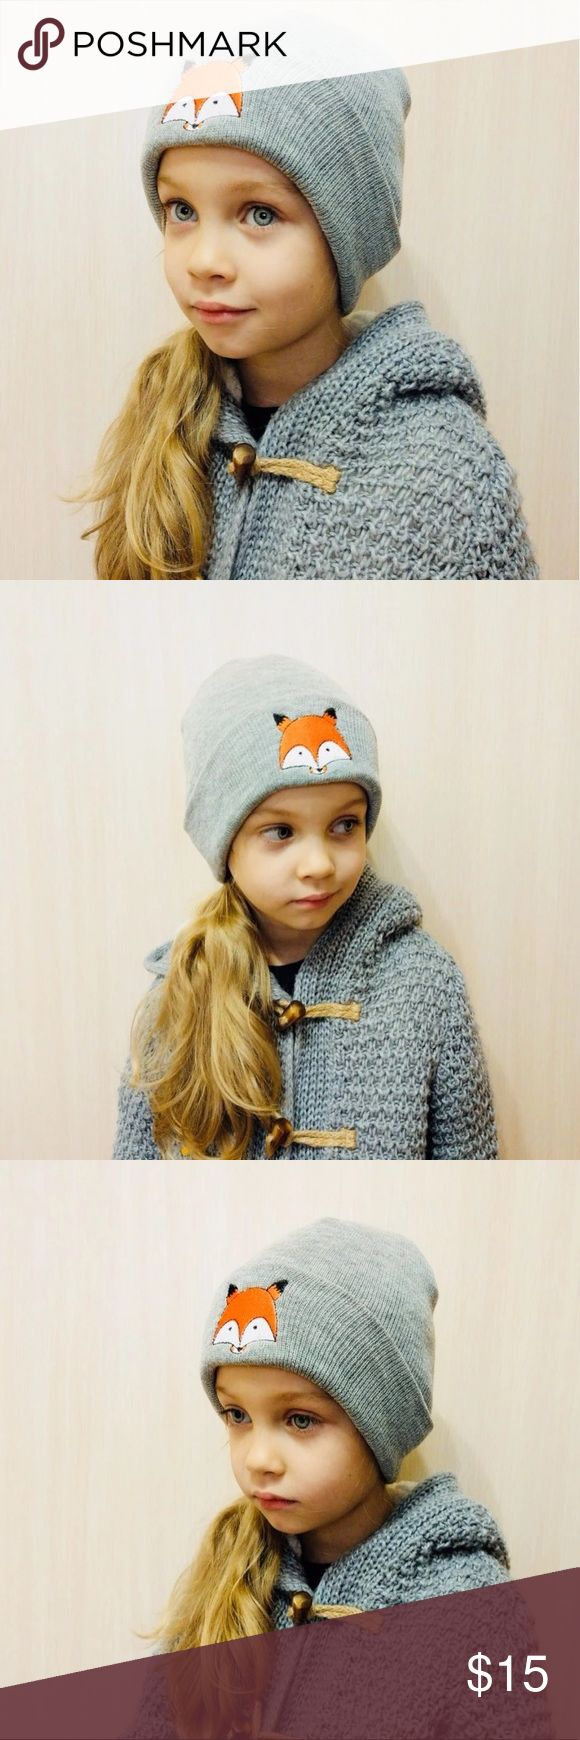 """""""Sometime Sly, Always Sweet"""" incredibly soft blend of cotton/polyester/acrylic, definitely a unisex style and adorable on any of our little posh kiddos.  Bundle to get a discount. TSH Accessories Hats"""